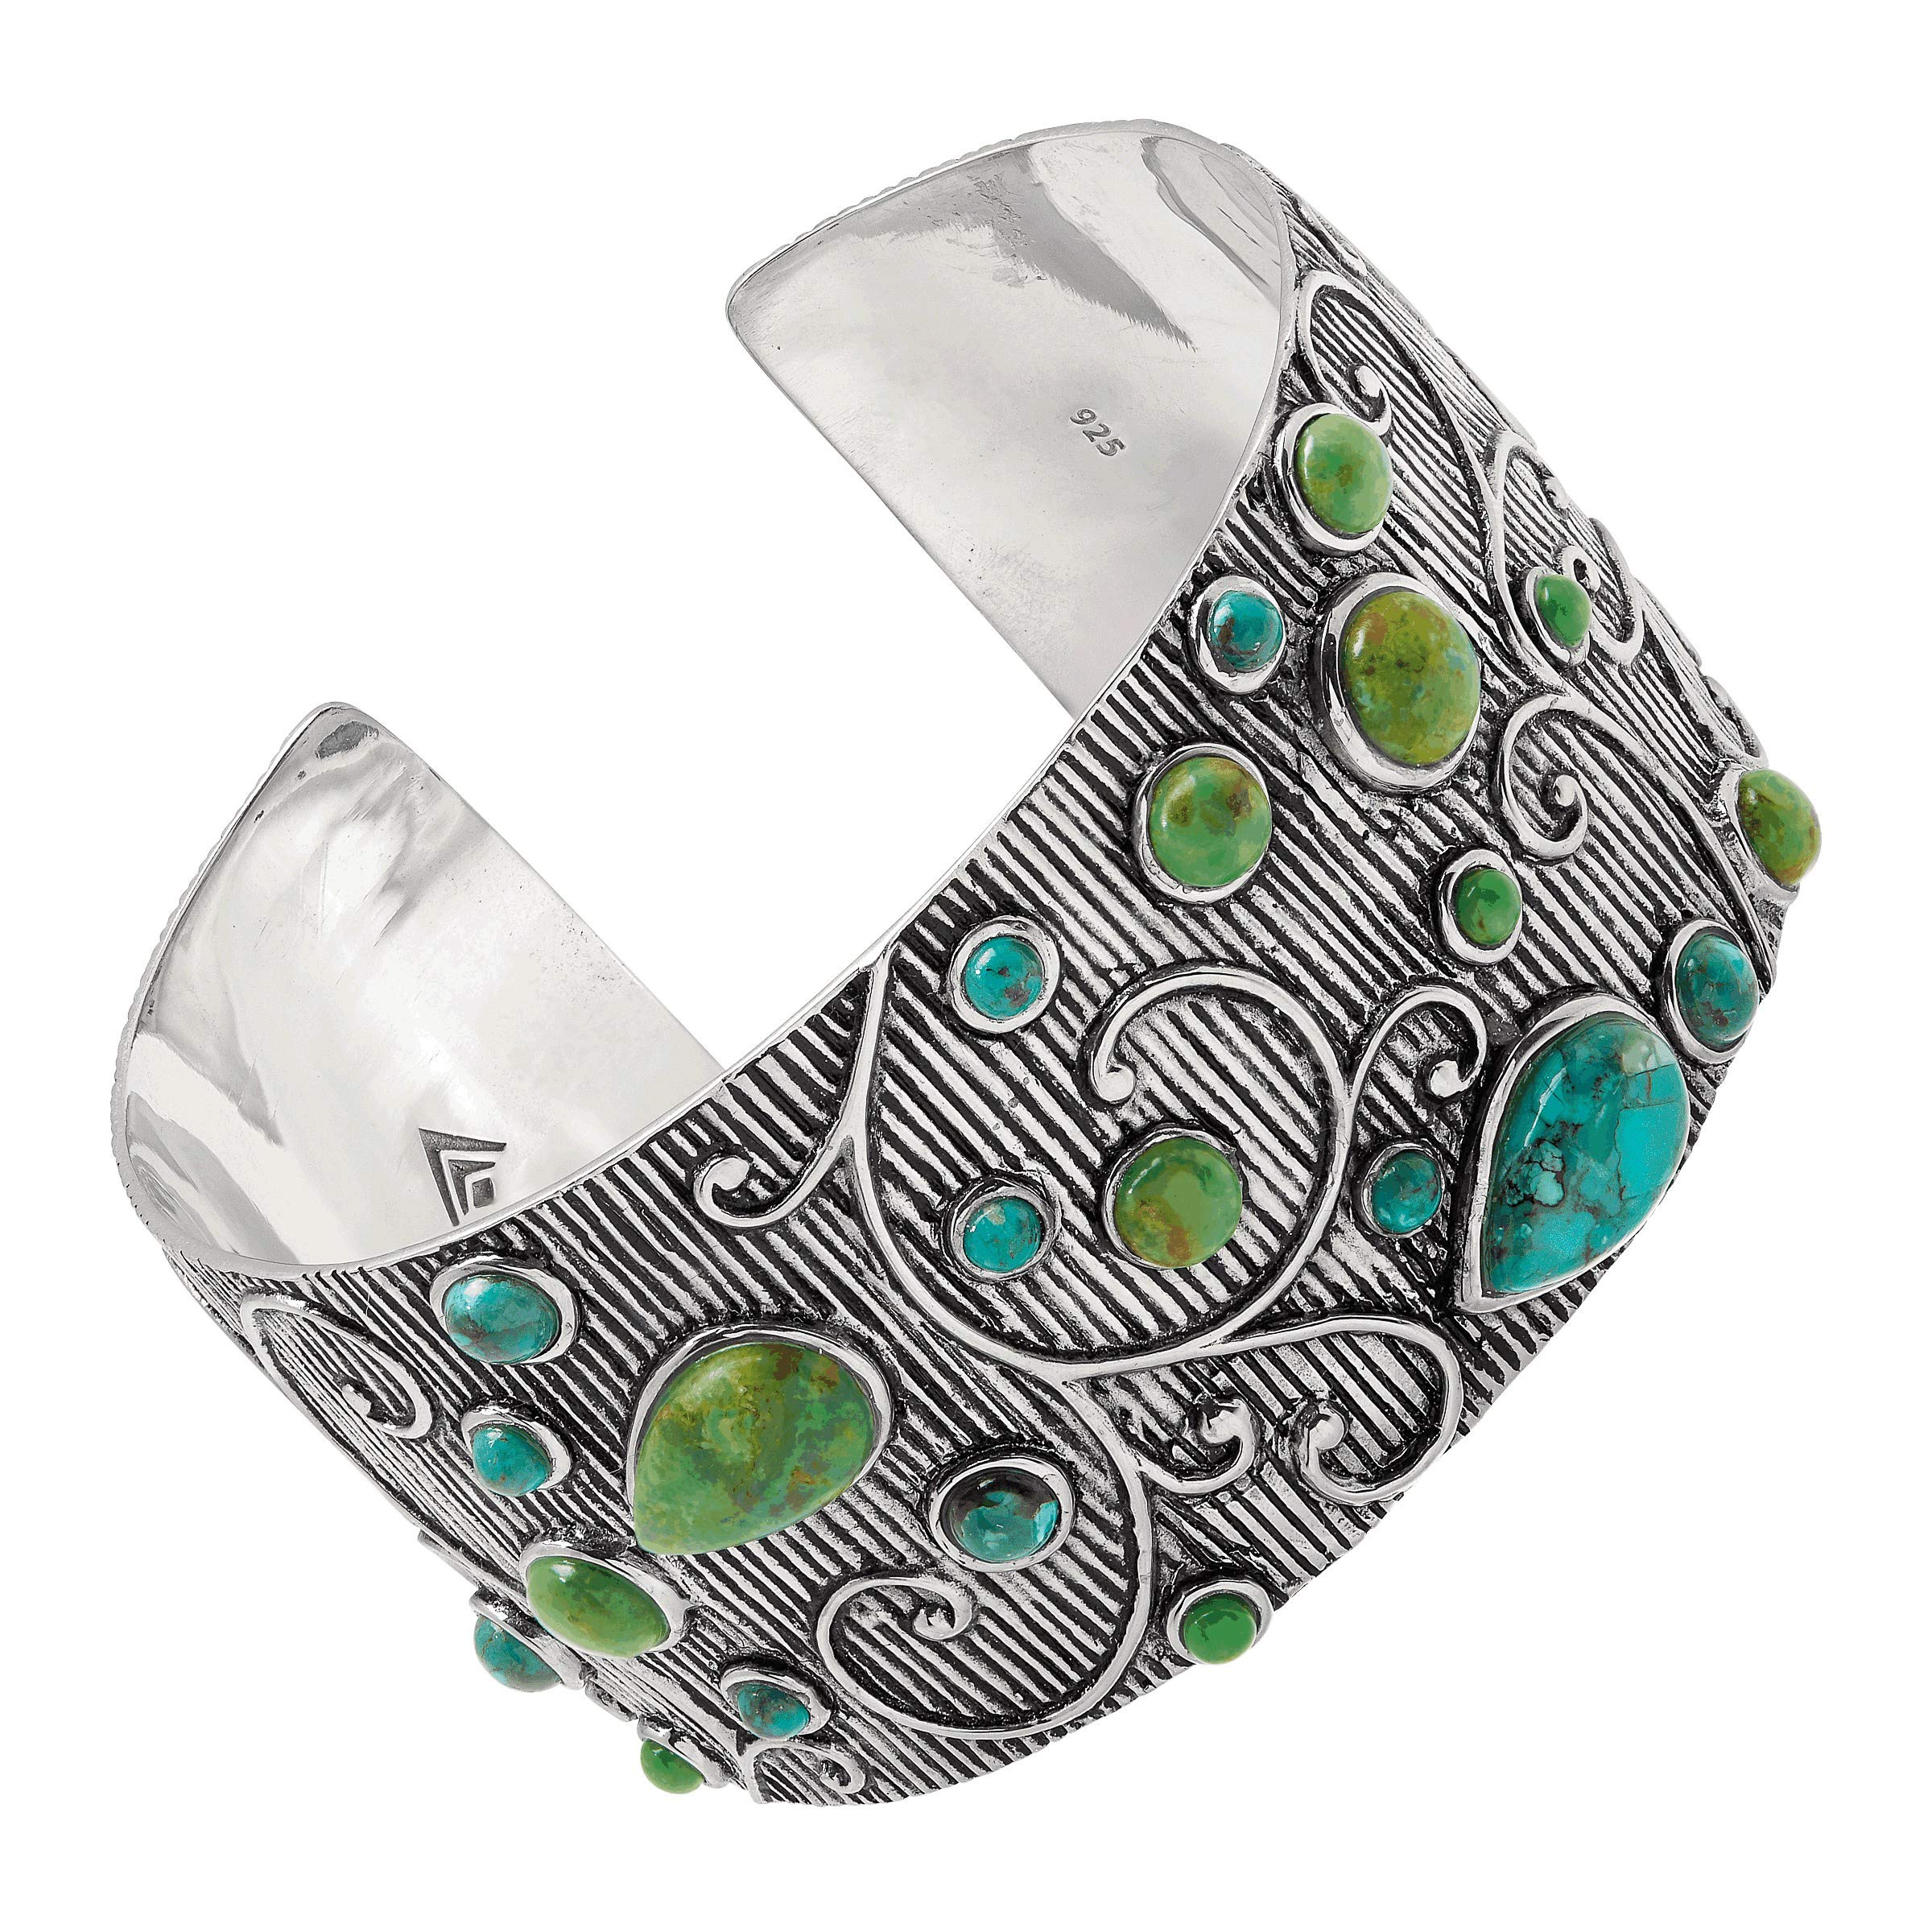 Silpada 'Prints Charming' Compressed Turquoise & Green Turquoise Textured Cuff Bracelet in Sterling Silver